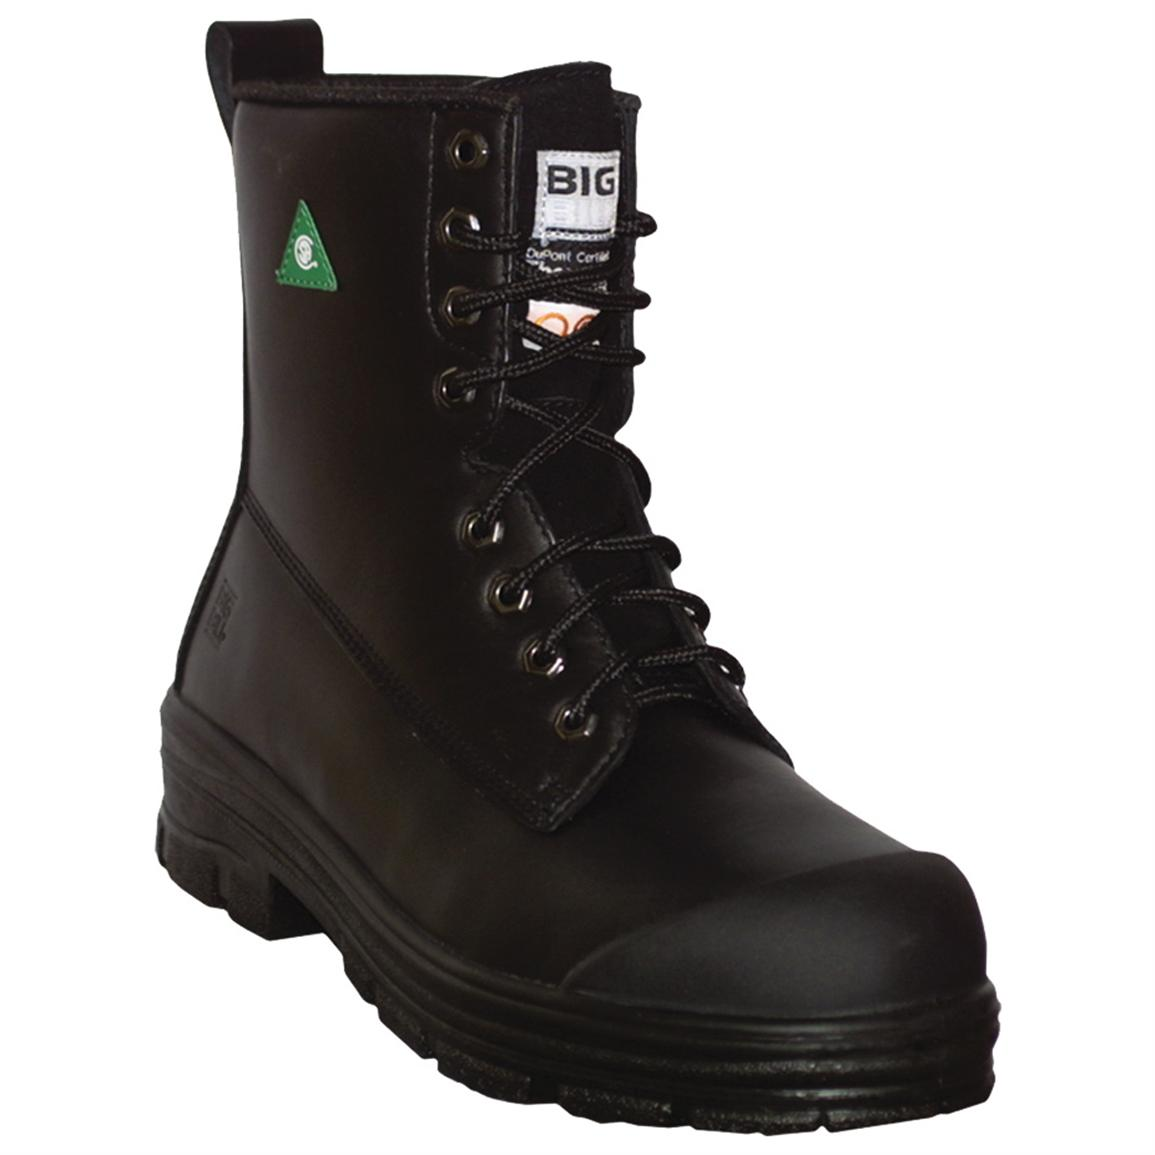 Black Steel Toe Work Boots NYN87b1i